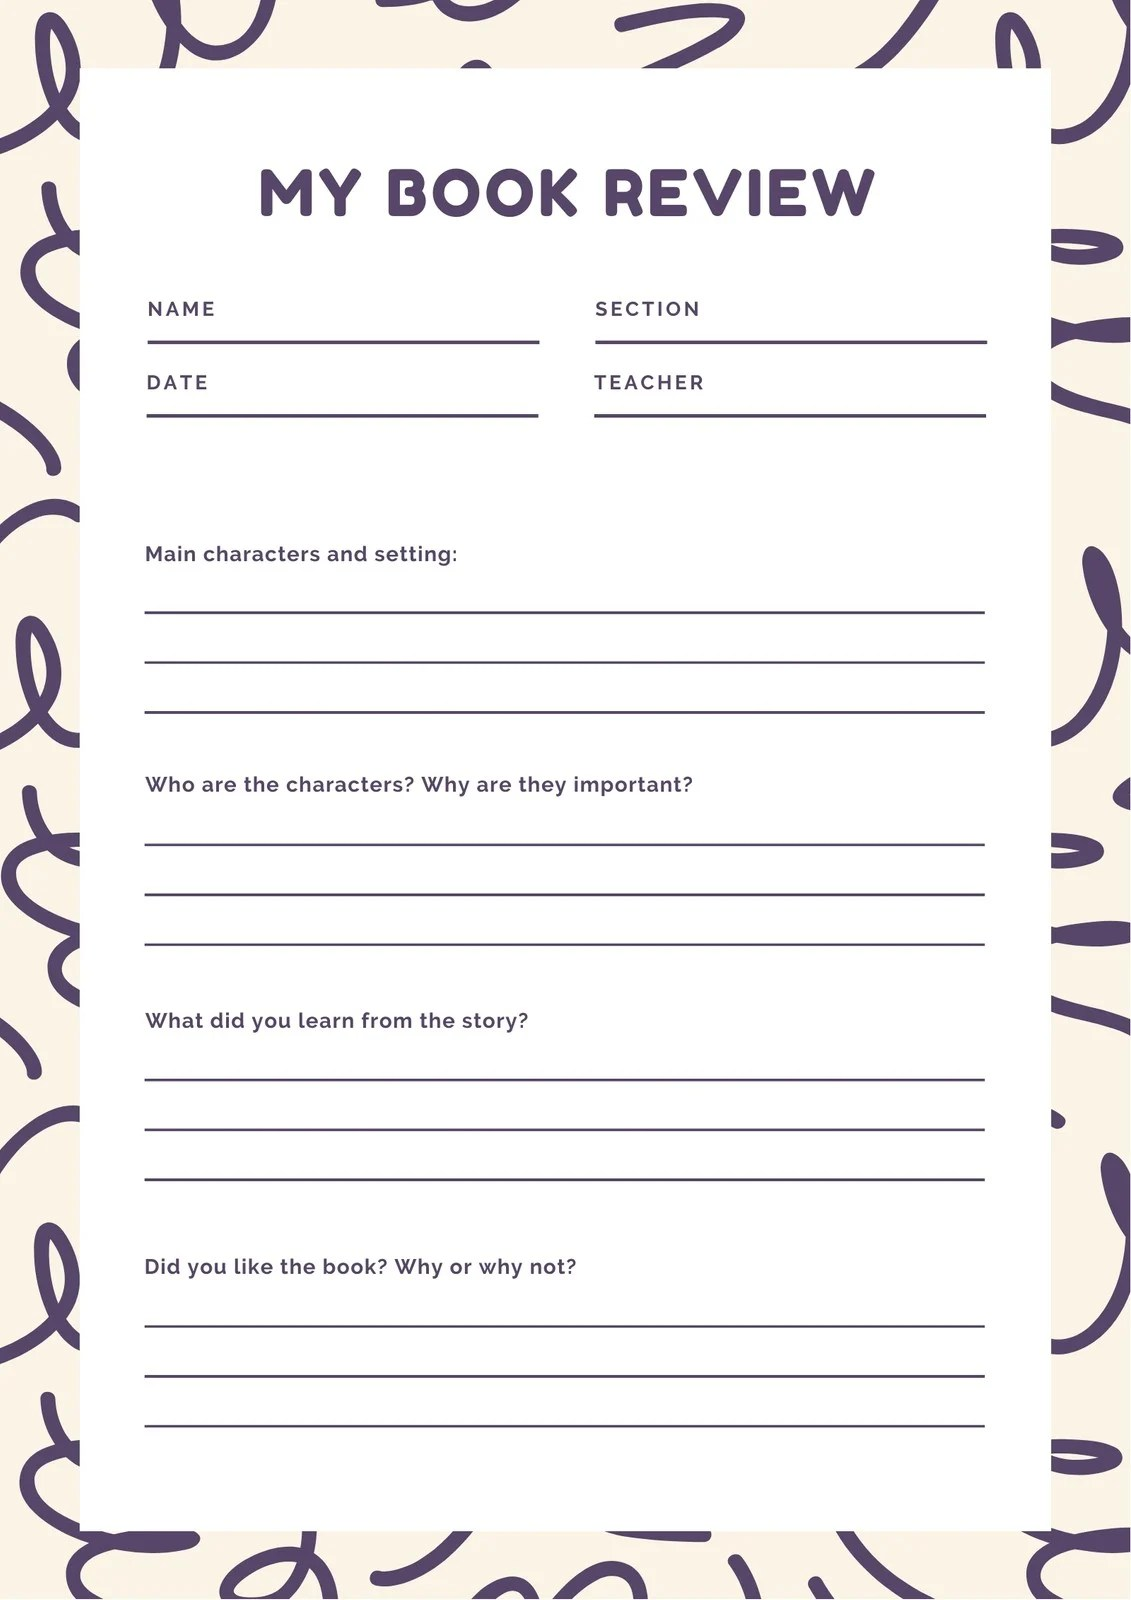 Purple And Cream Primary School Book Review Worksheet